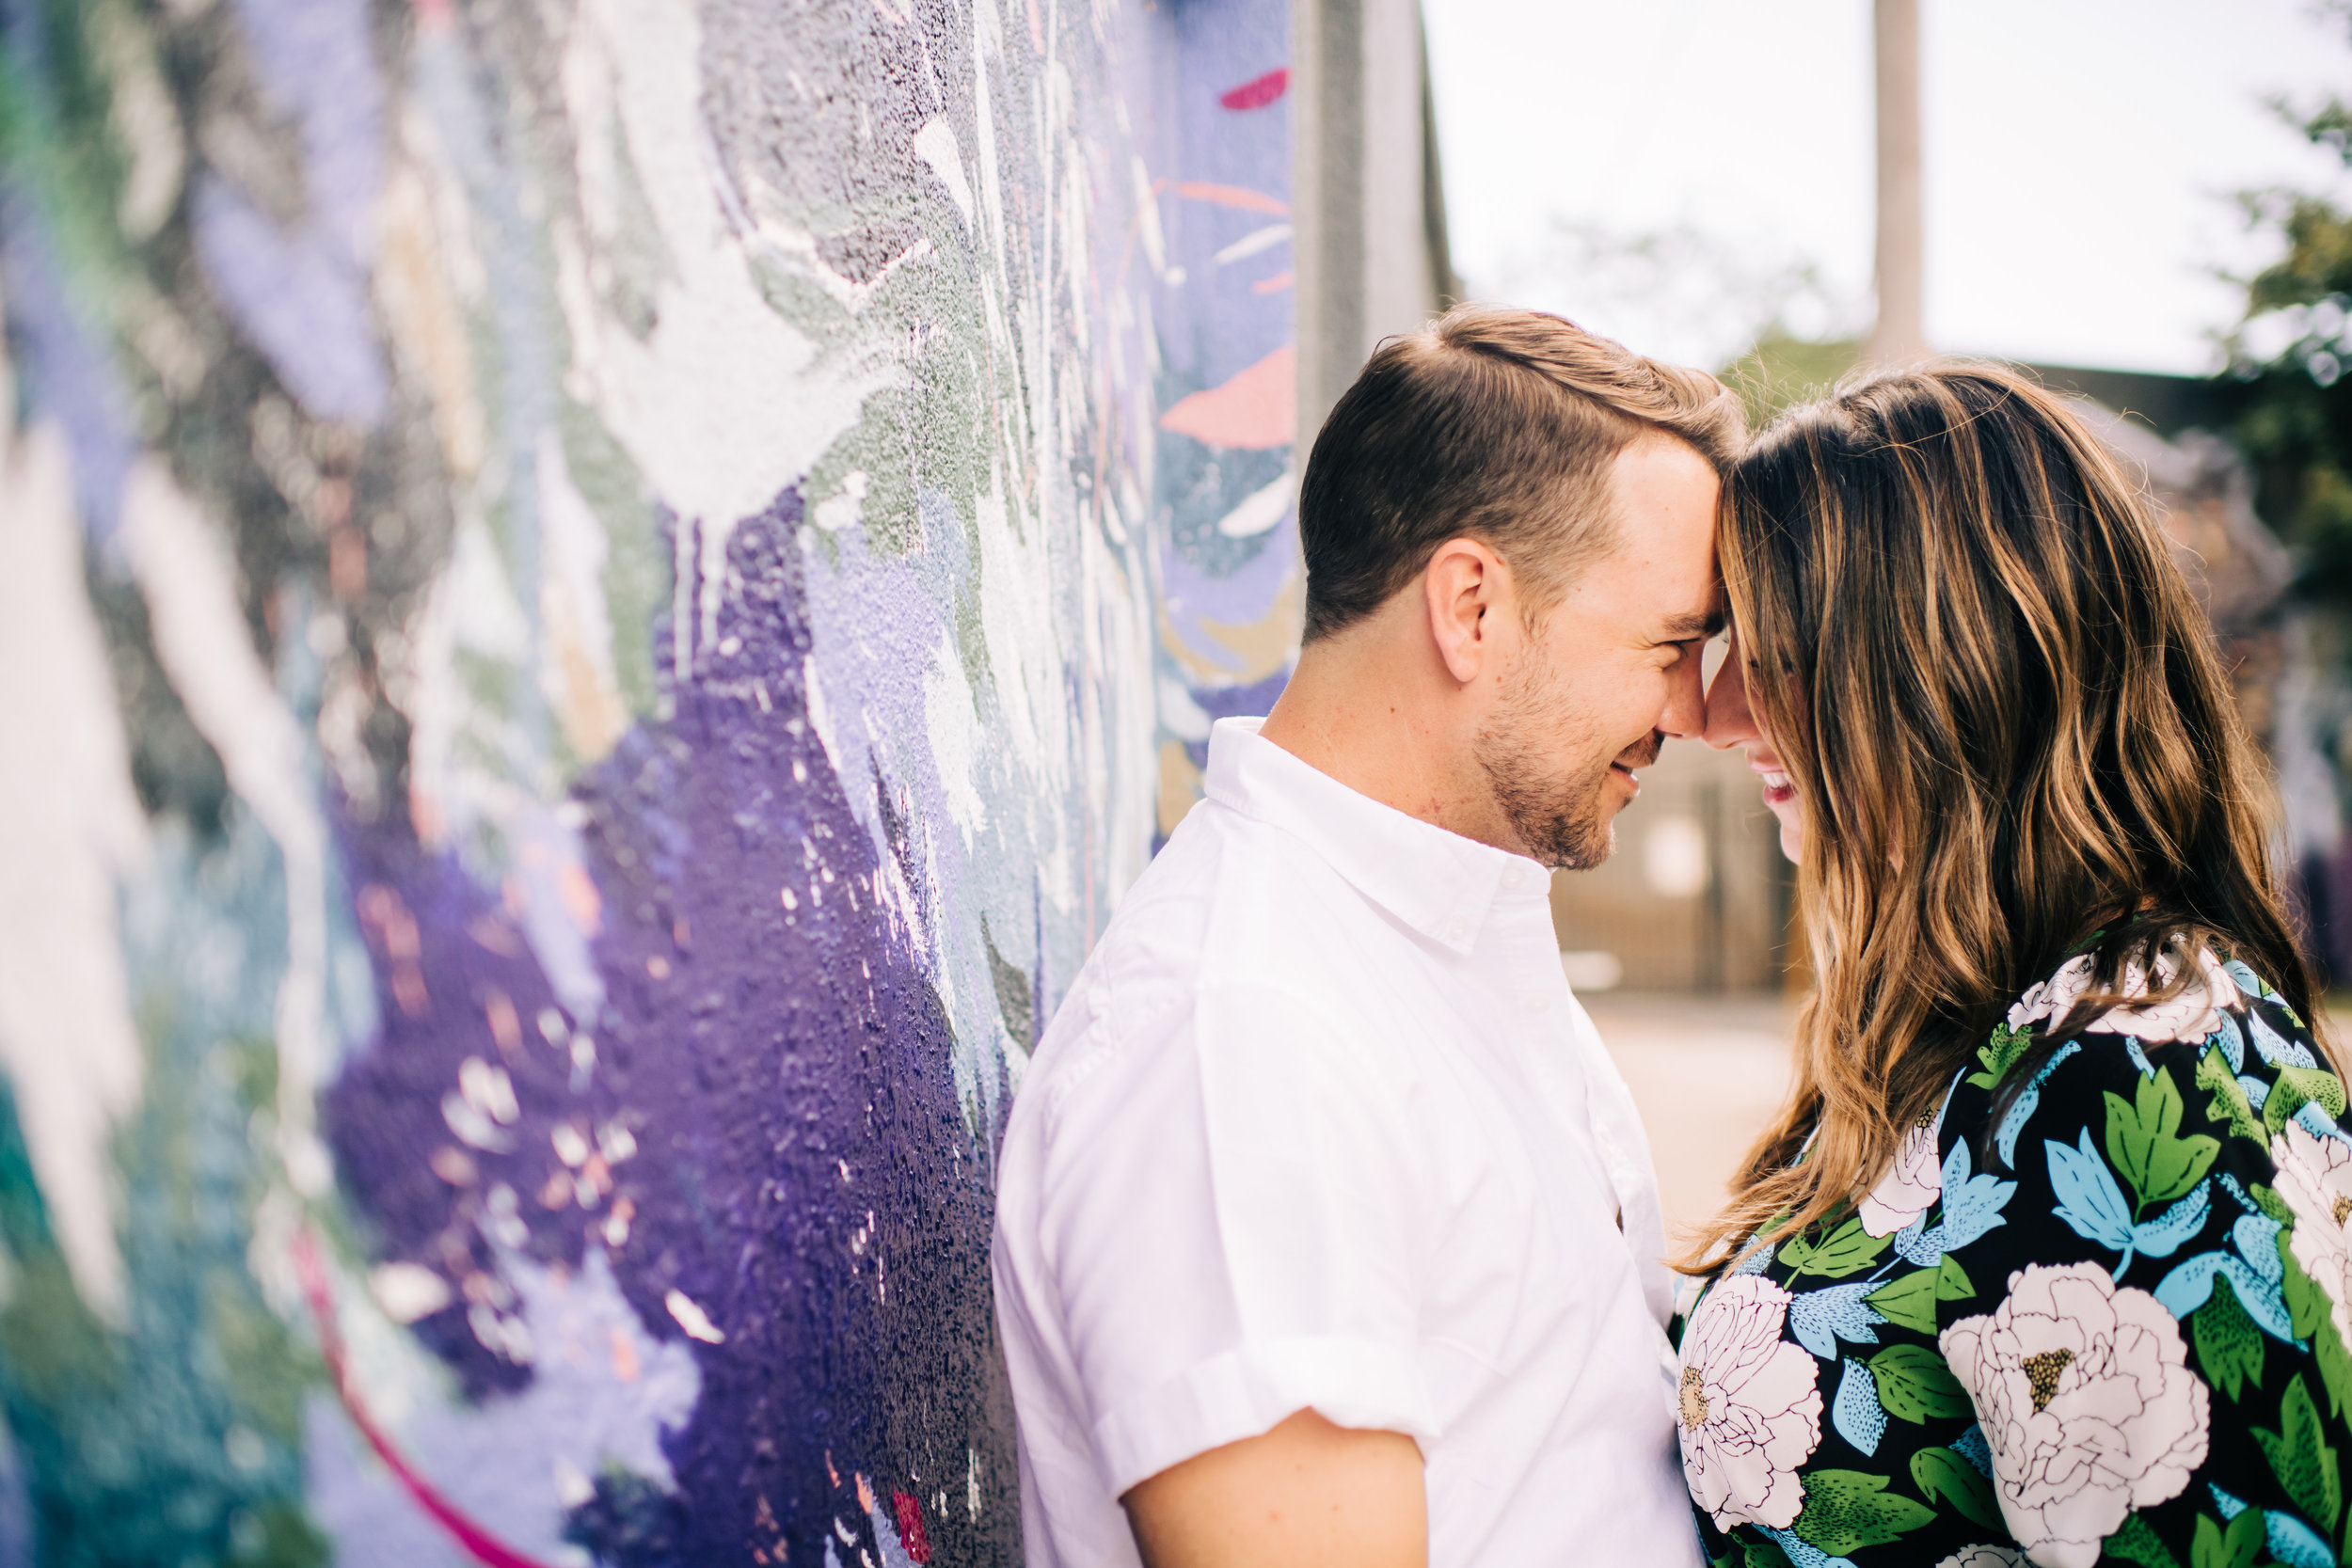 atlanta midtown cabbagetown jackson street bridge oakland san francisco engagement wedding nontraditional fun creative eclectic photographer magic-19.jpg